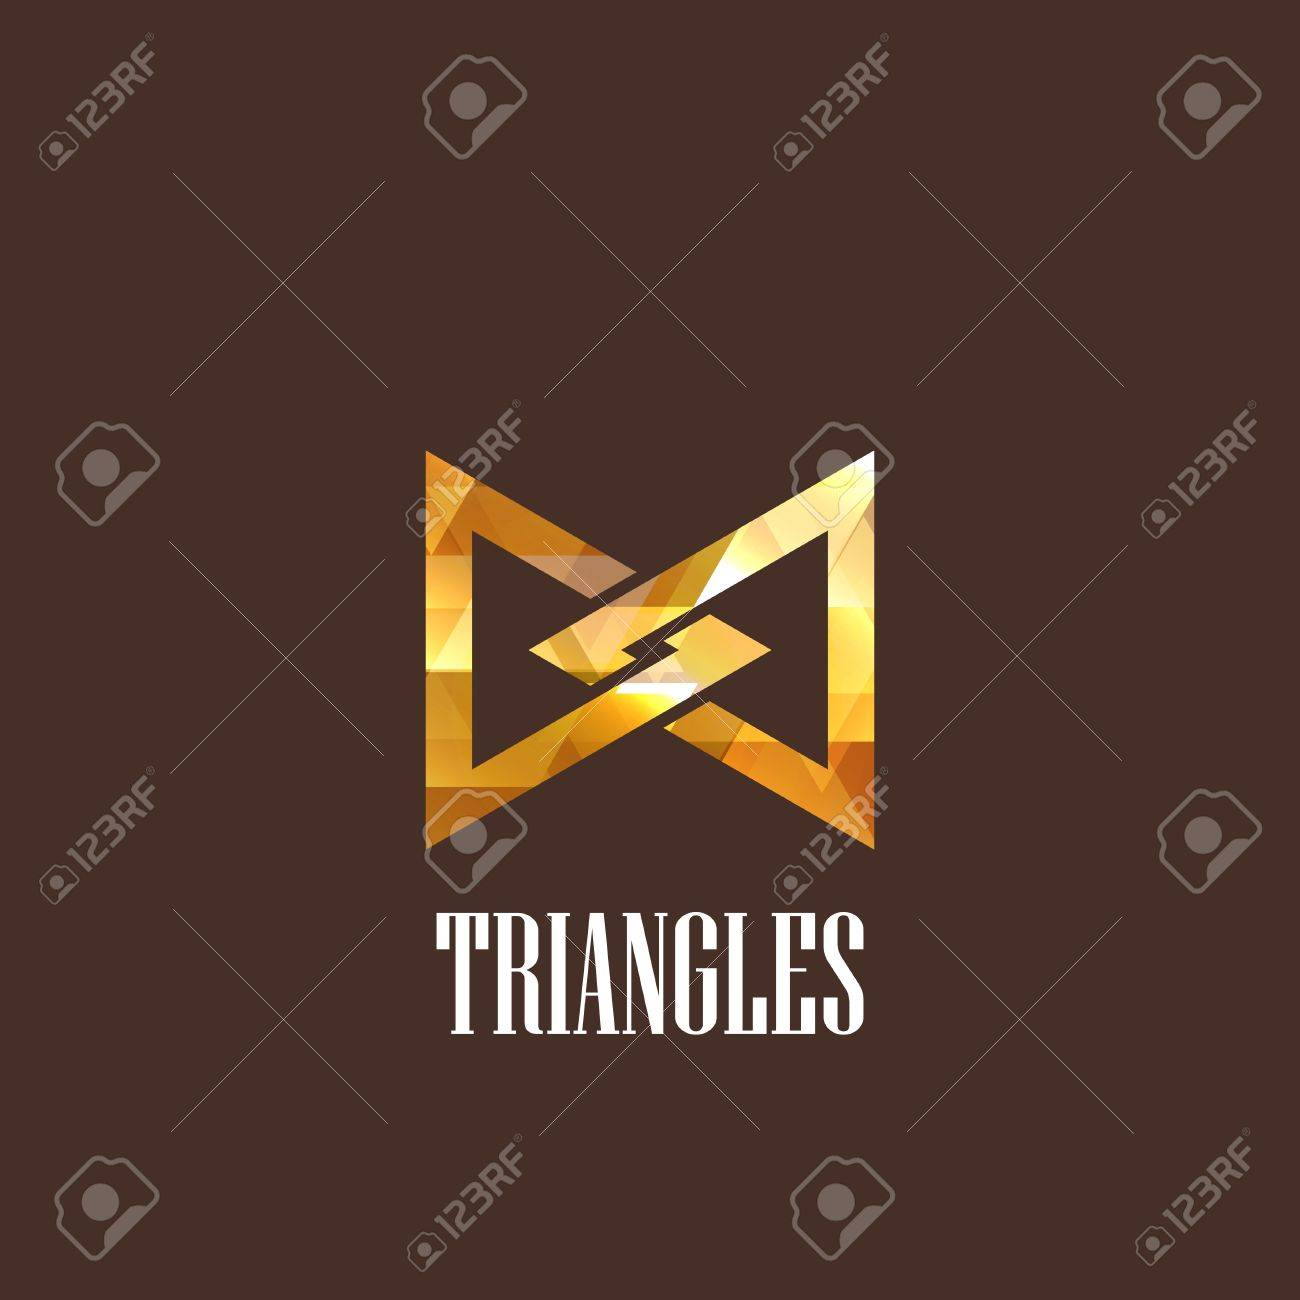 illustration with a diamond triangles icon Stock Vector - 22030242